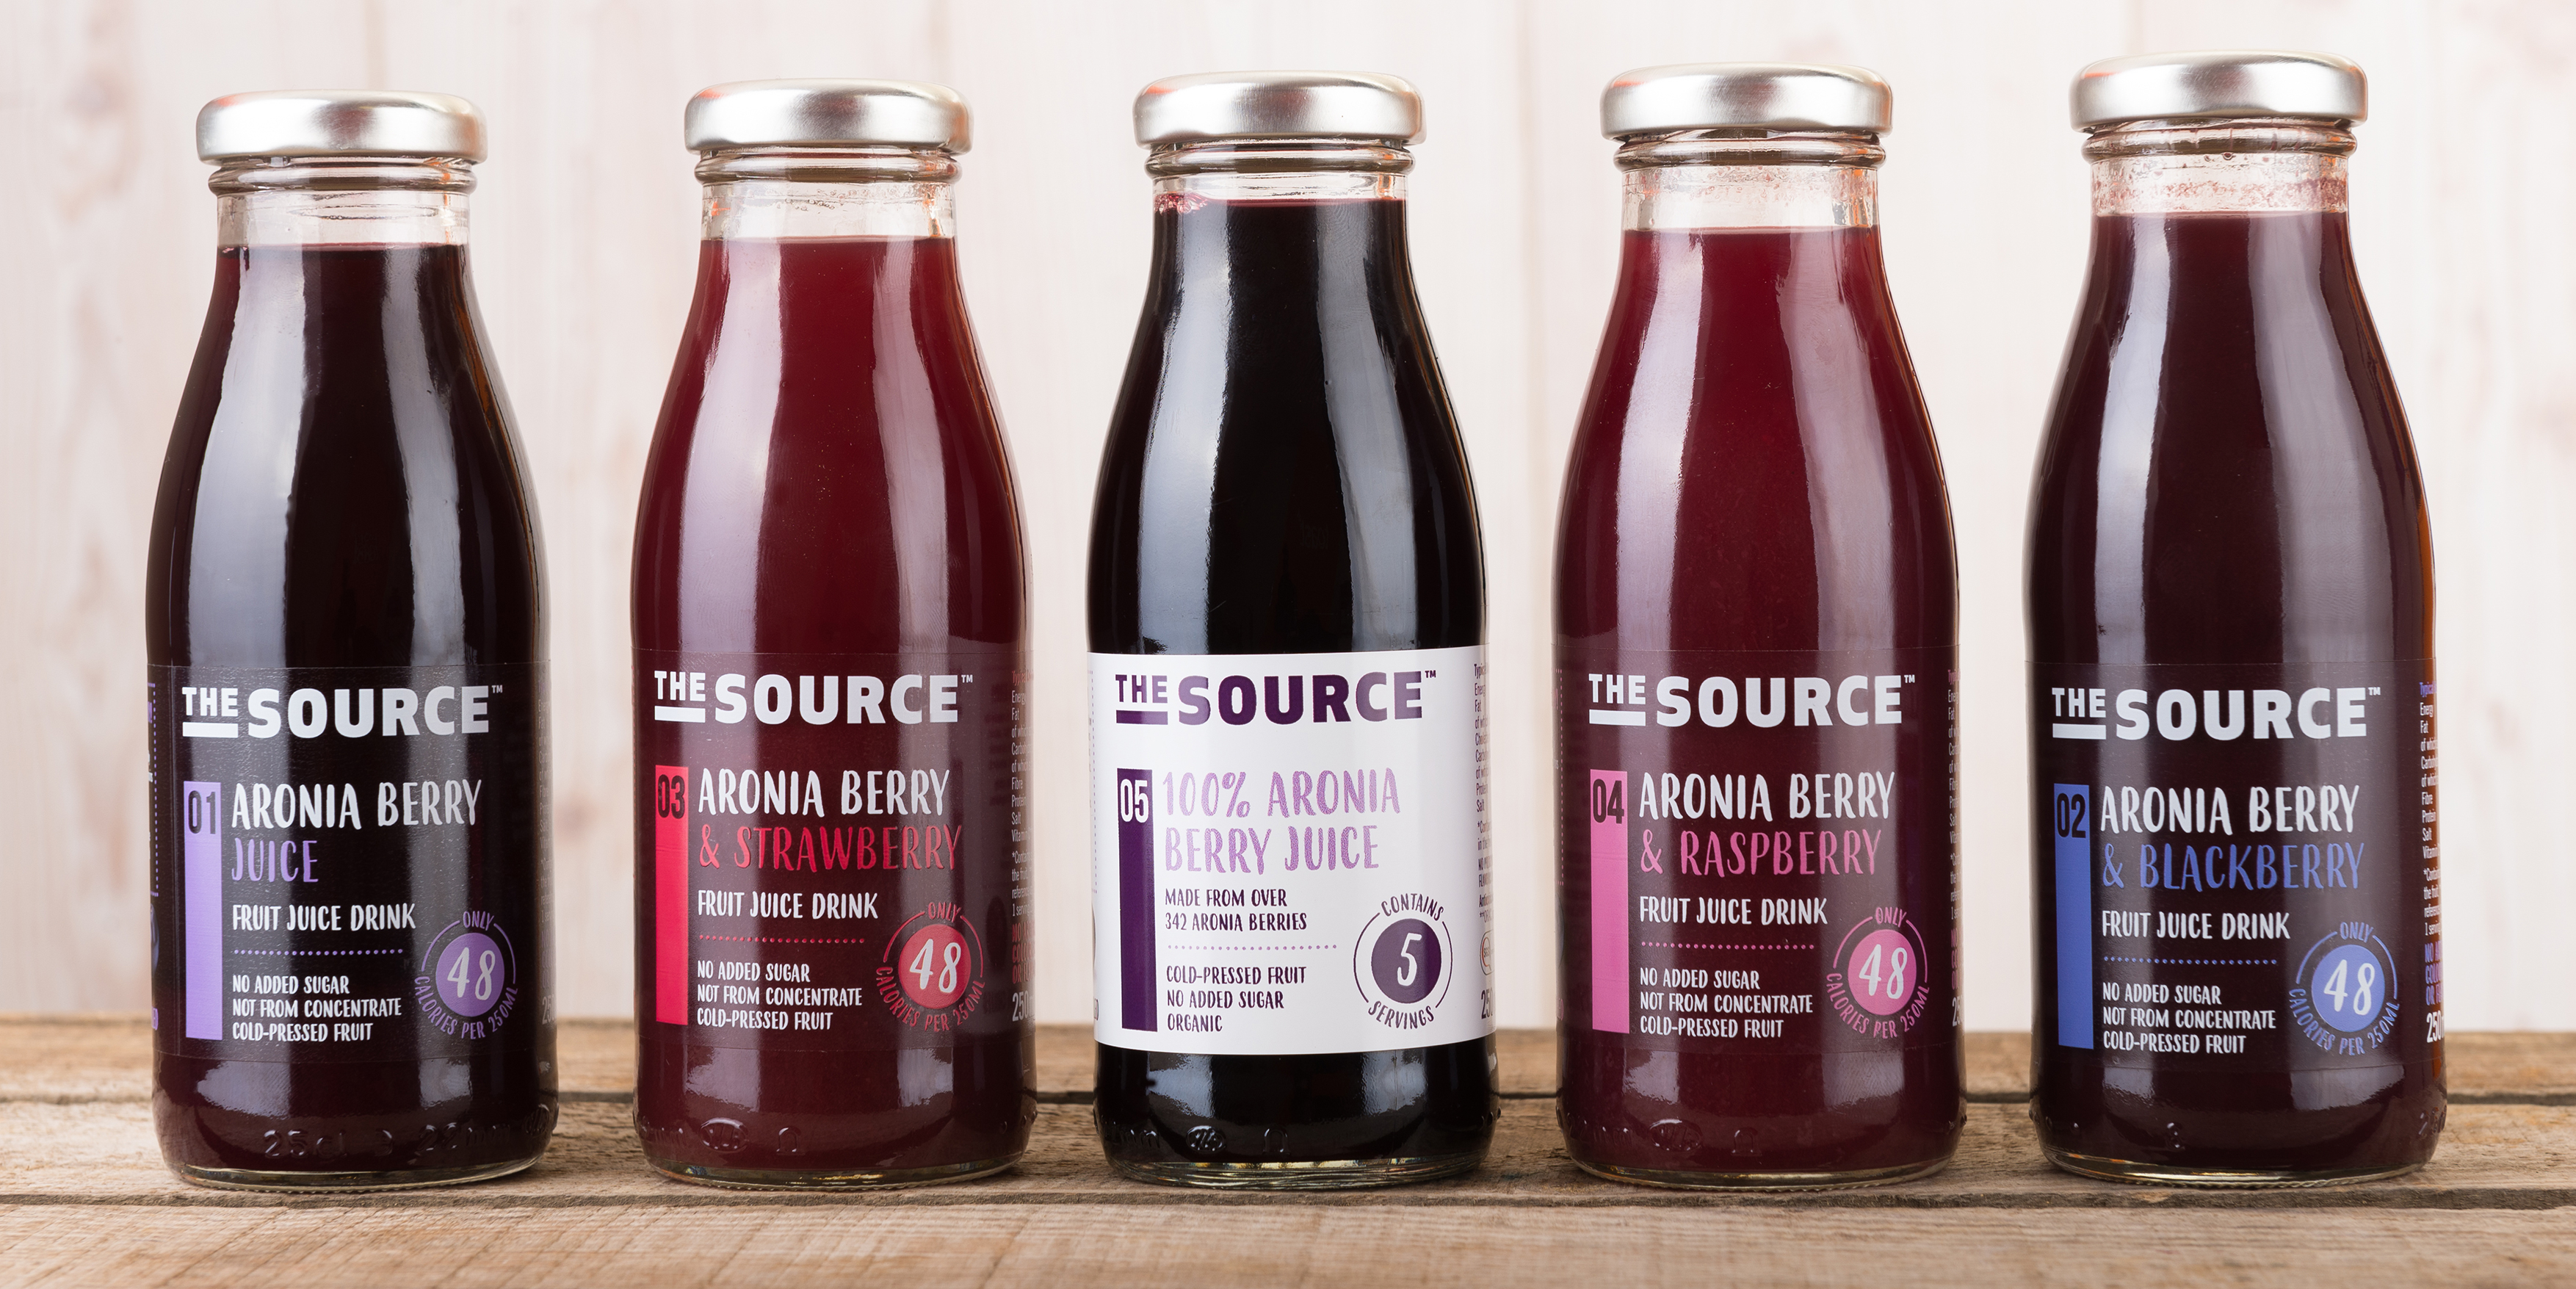 Aronia Berry Drink Branding & Packaging by Toast Food